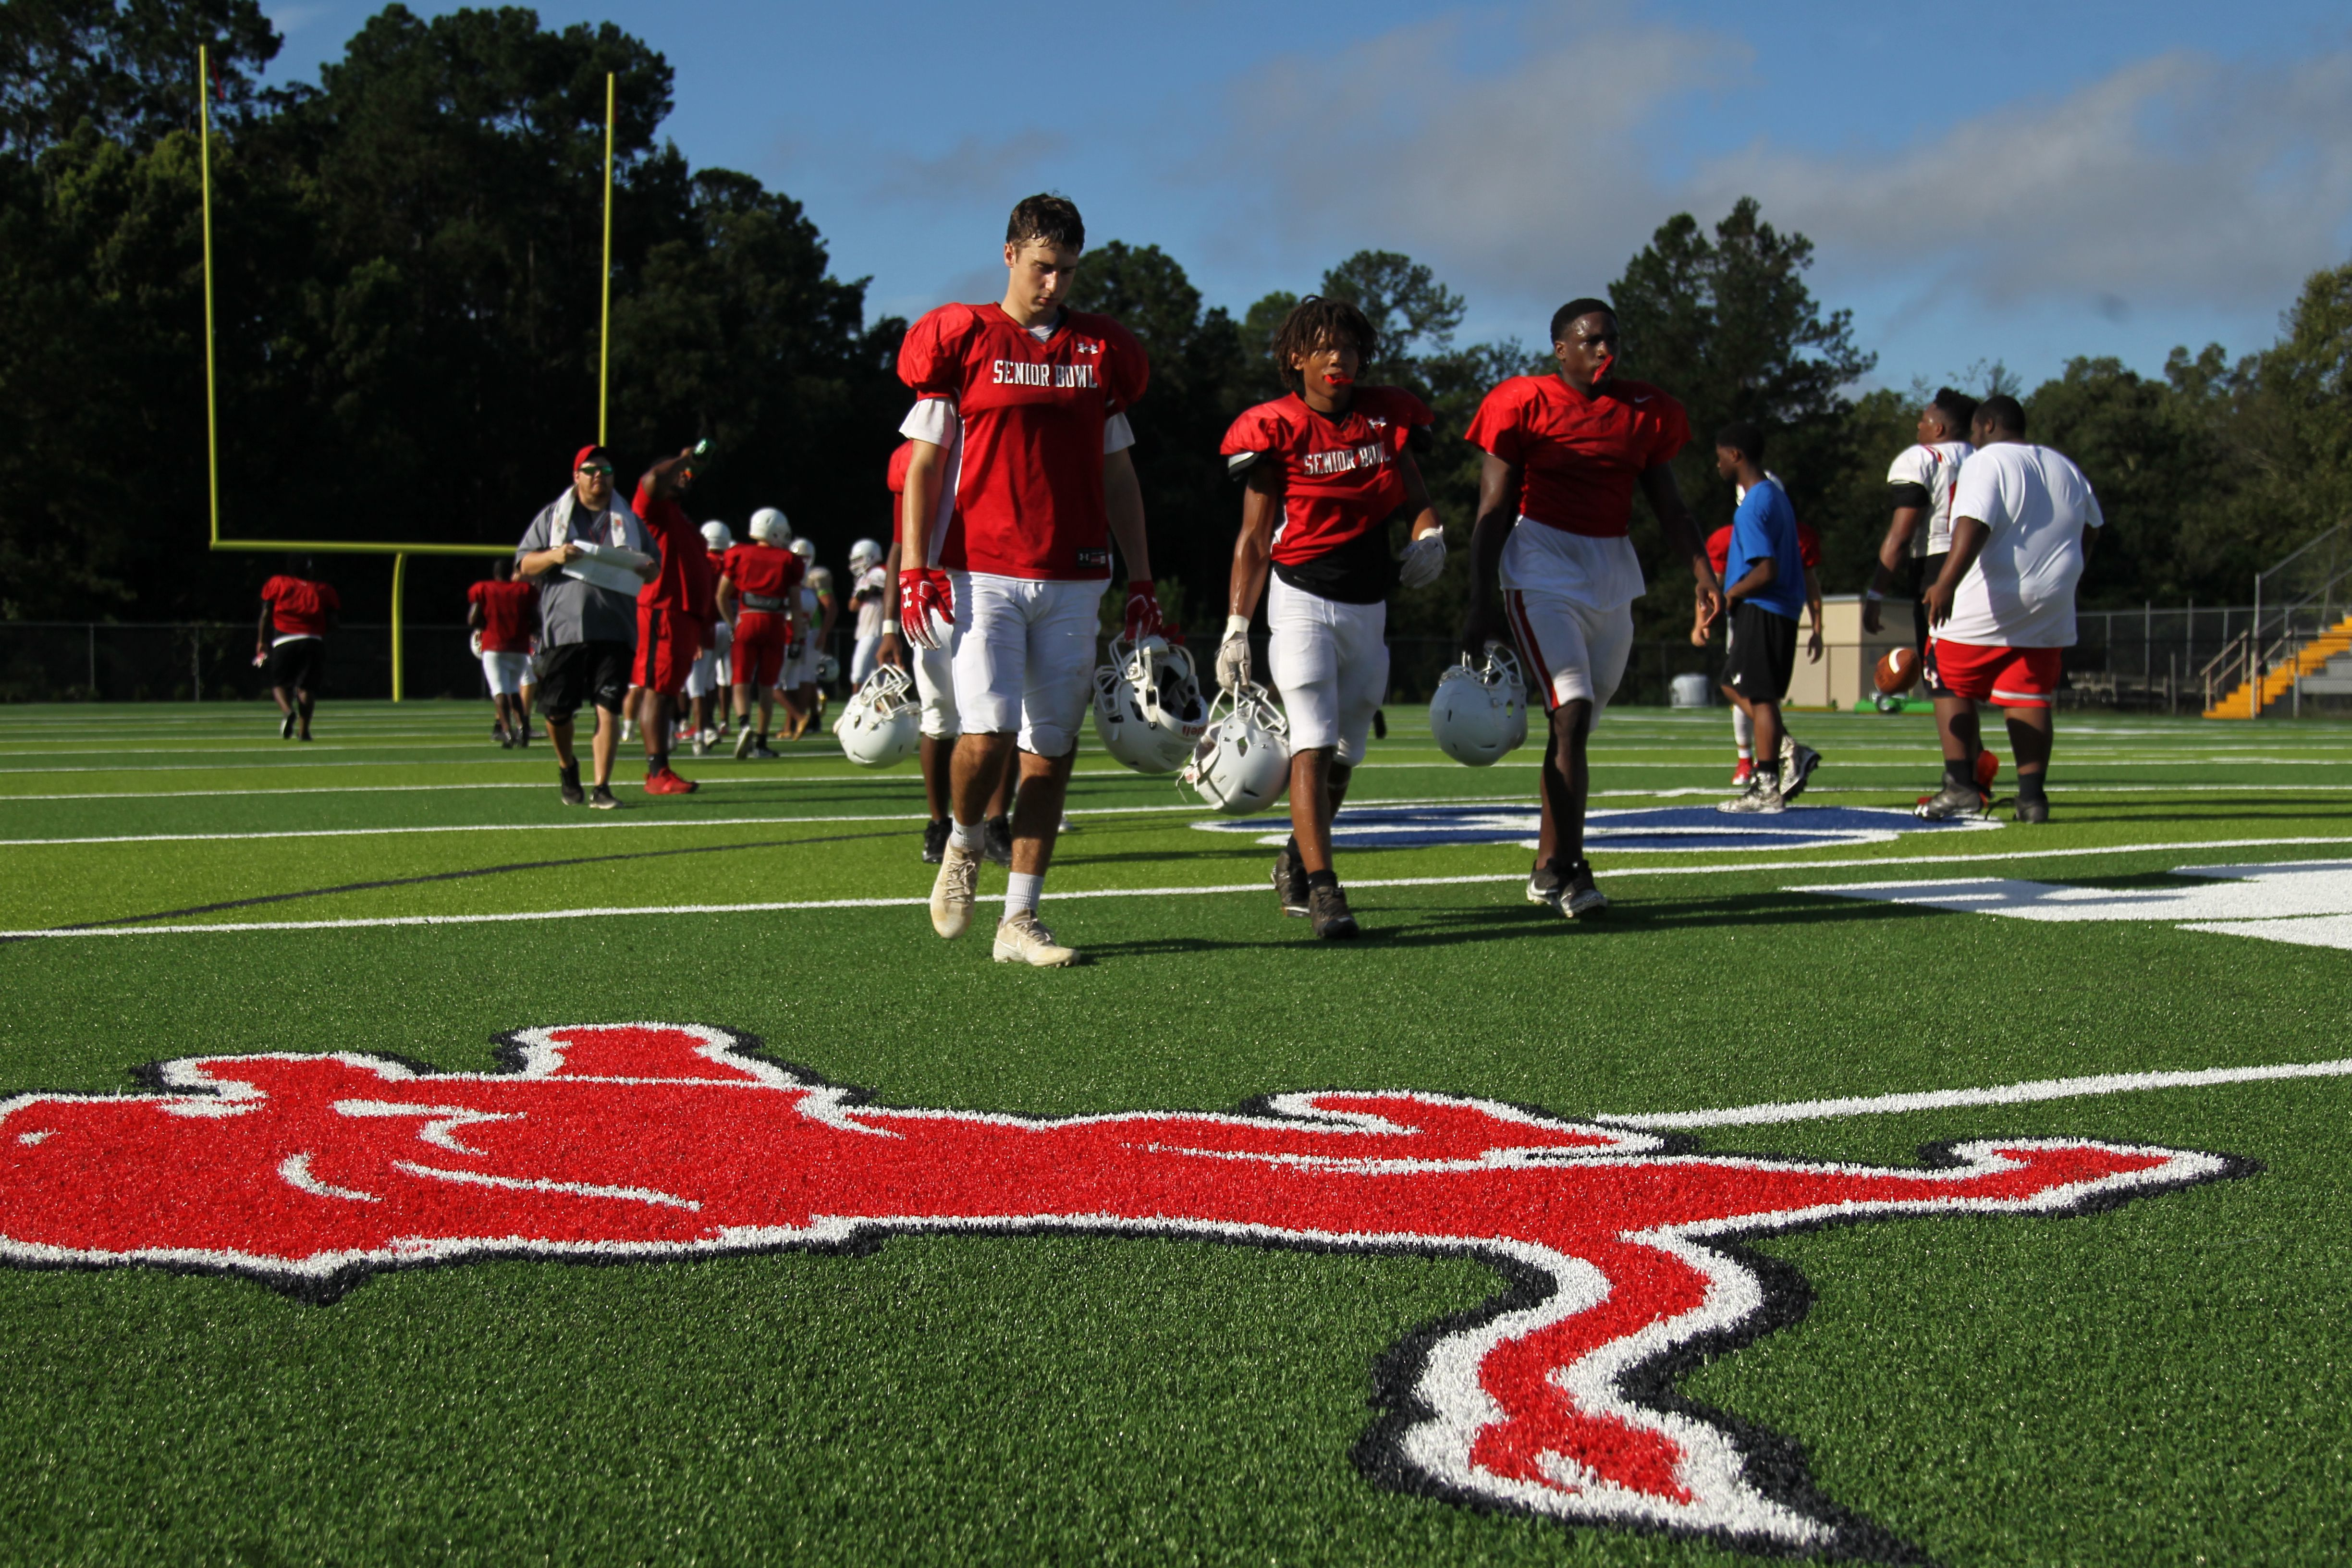 Leon's football team practices at Gene Cox Stadium on its new turf field on Tuesday, Aug. 7. Formerly Capital Stadium, Cox Stadium was dedicated to legendary Leon coach Gene Cox in 1997.